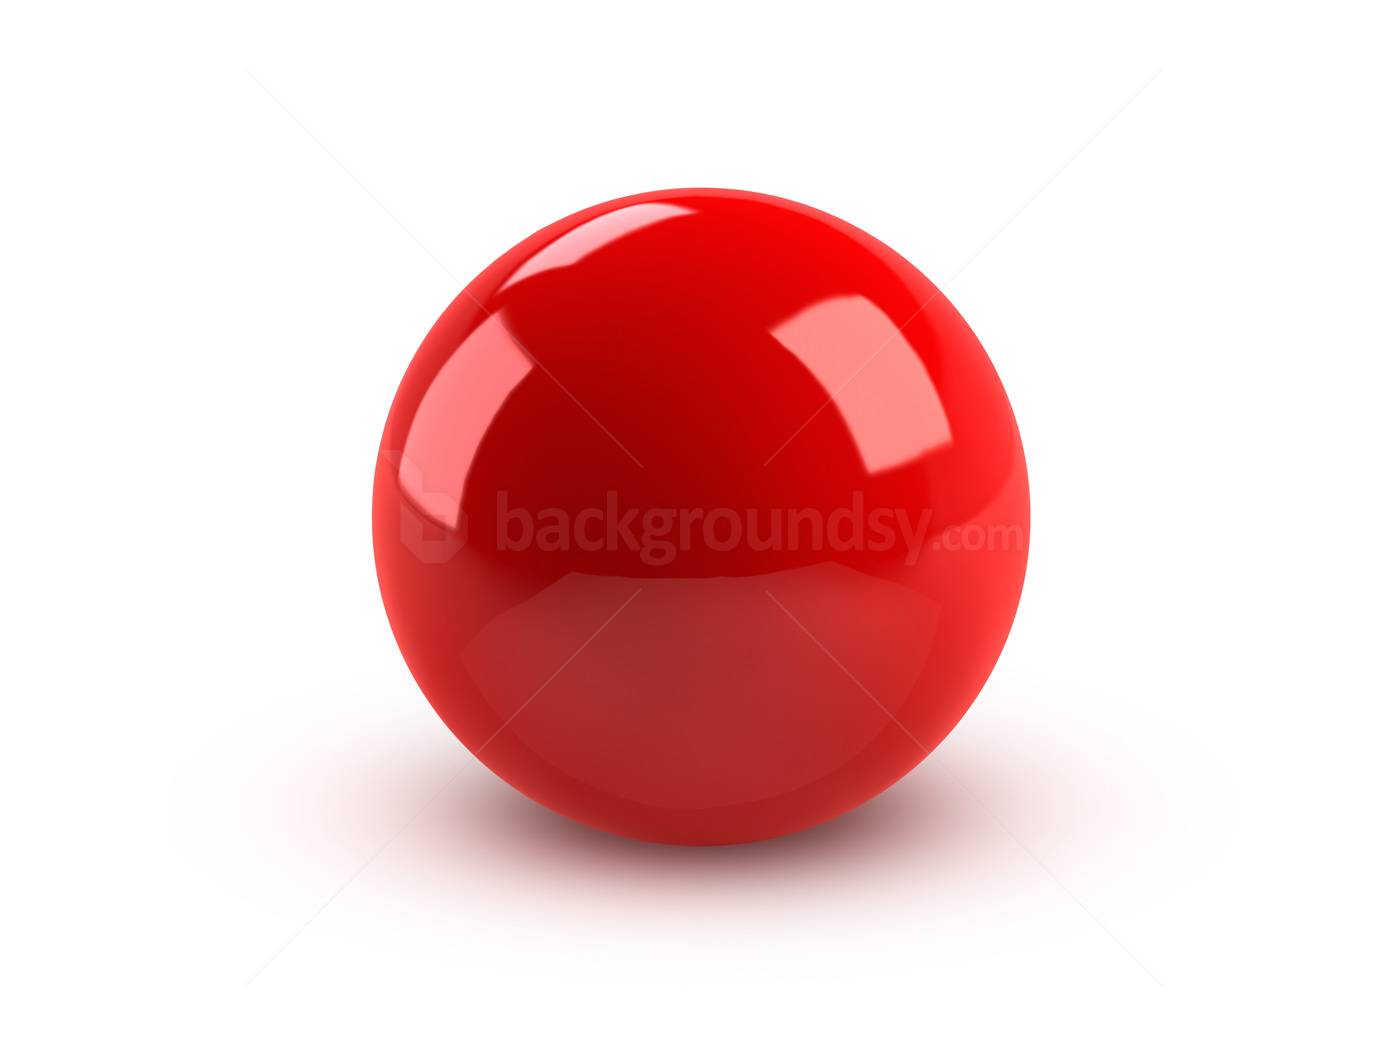 what is a red ball